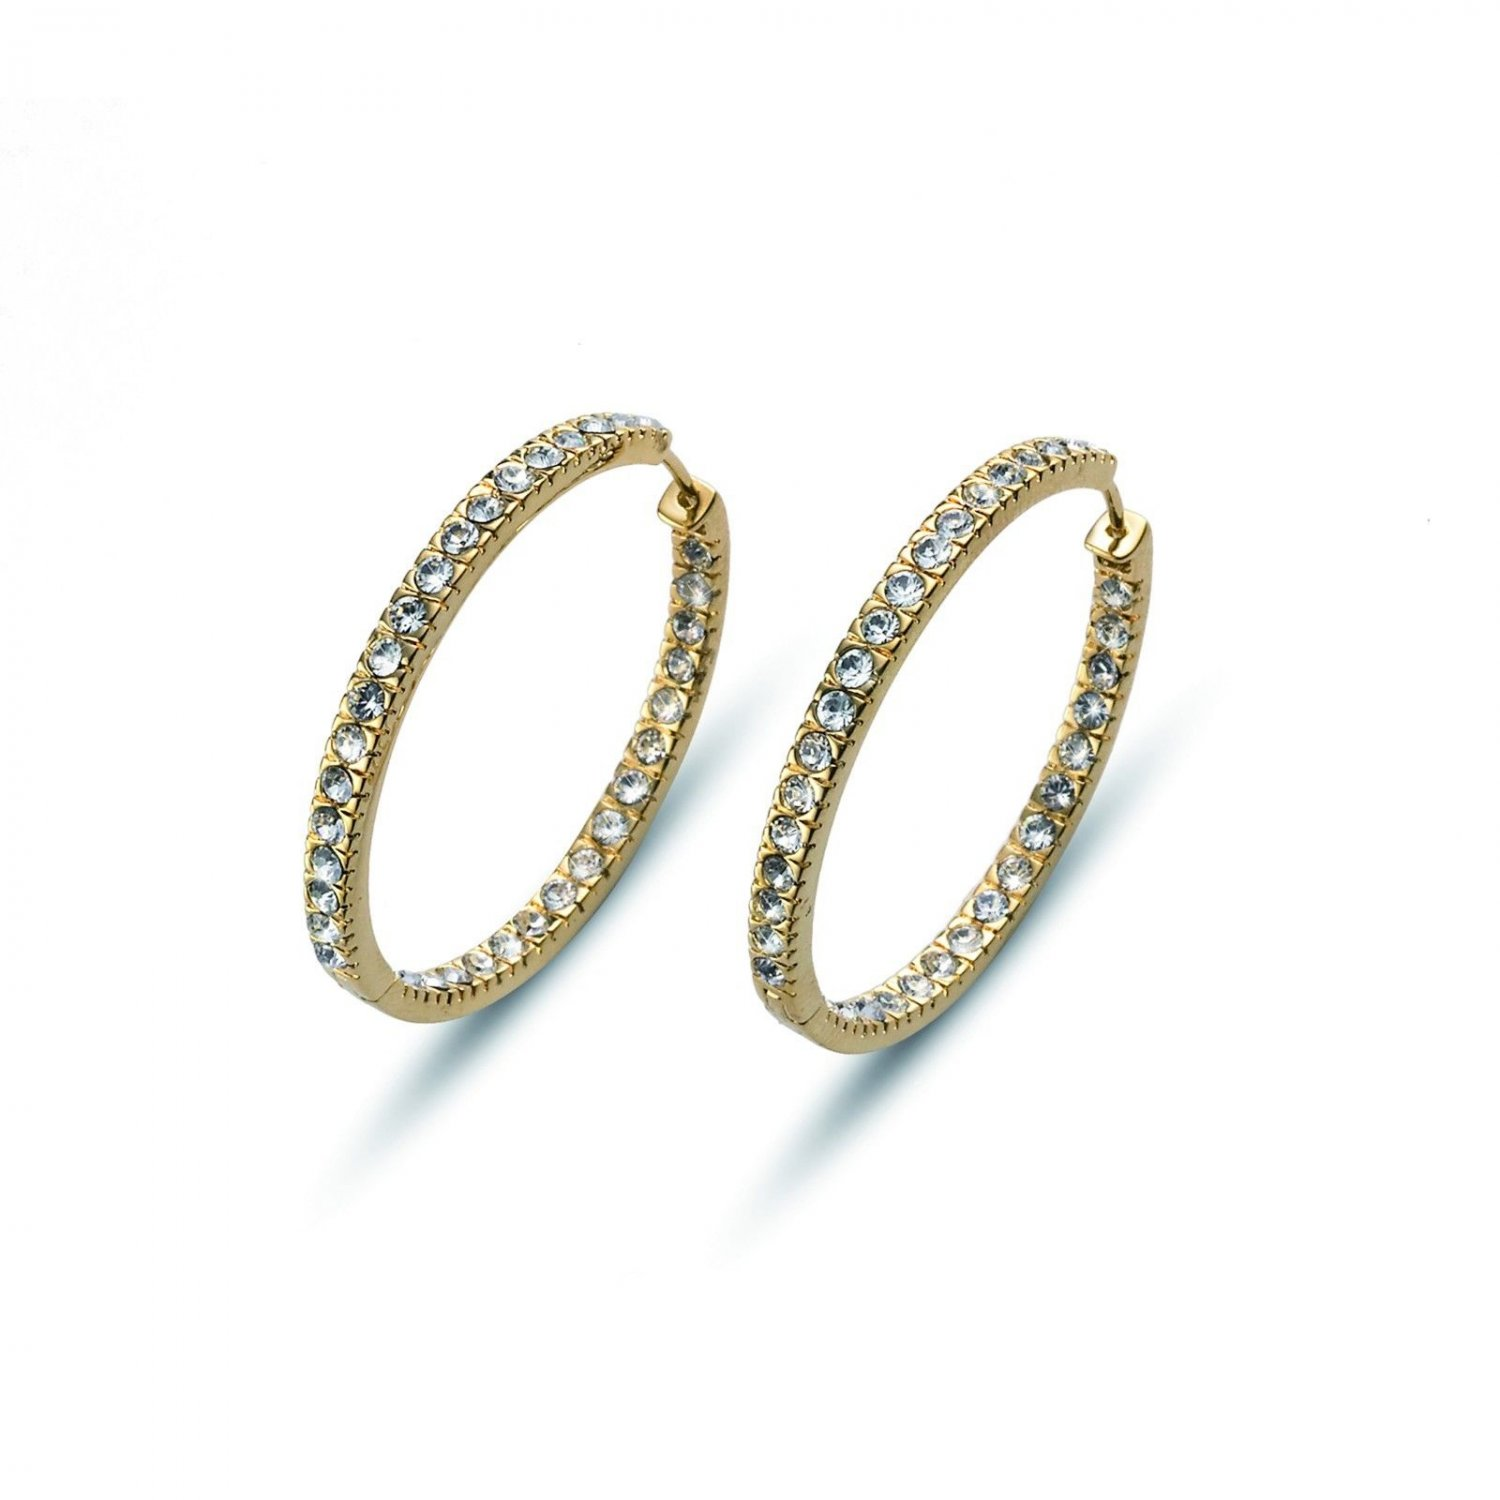 XL Hoop Yellow Gold White Clear Swarovski Elements Earrings Oliver Weber